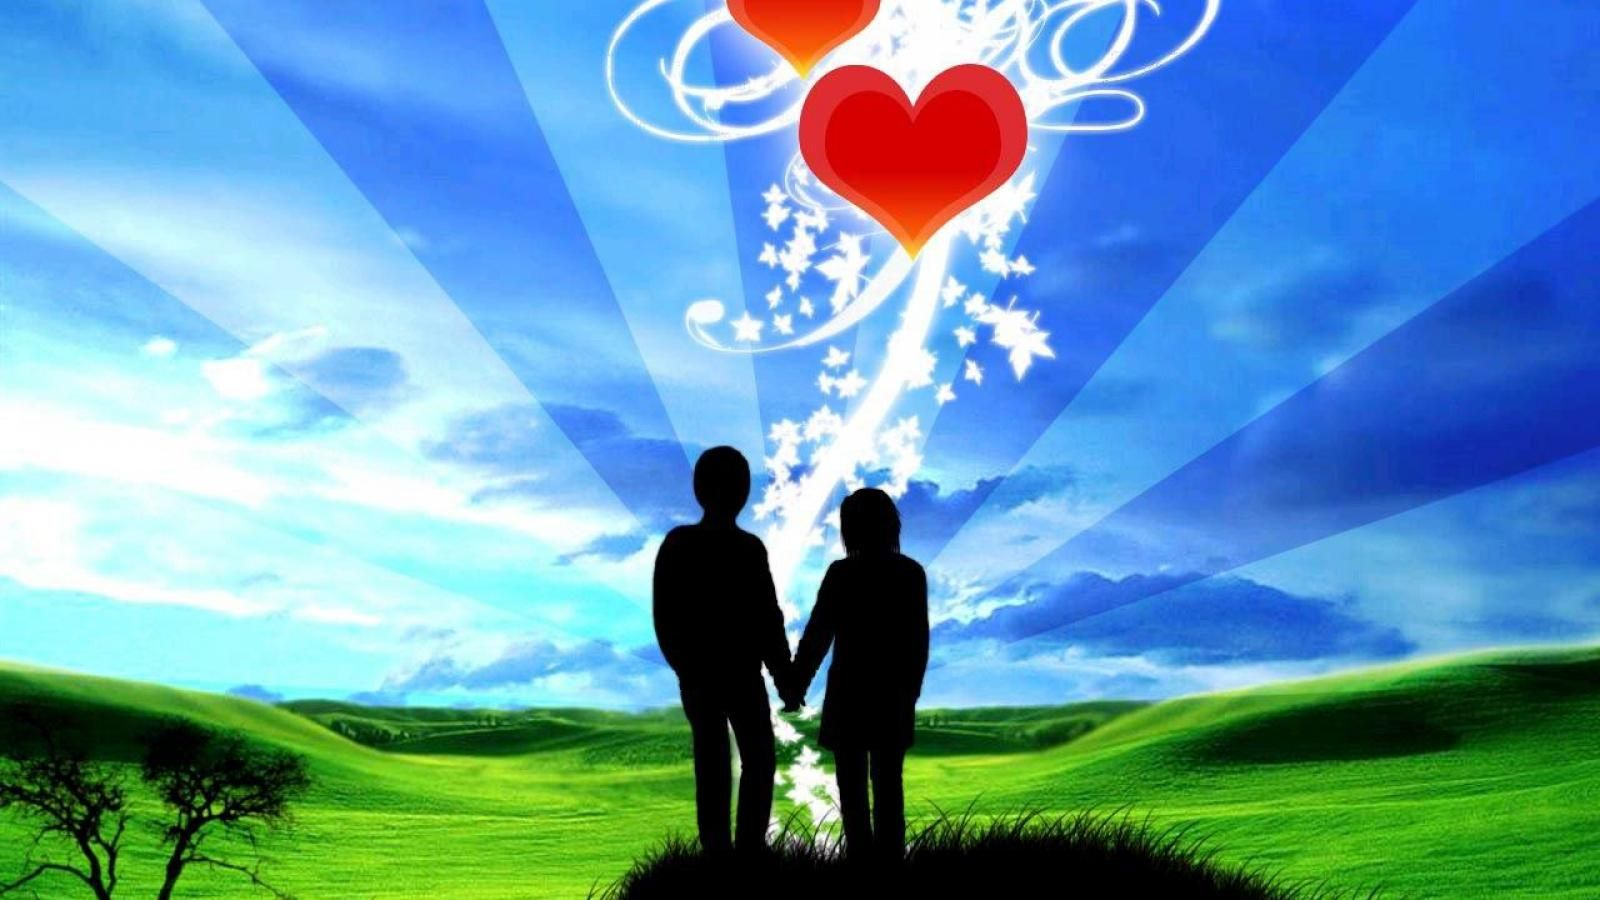 Best Wallpapers of Romantic Boy and Girl in Love Kisshug   HD ...